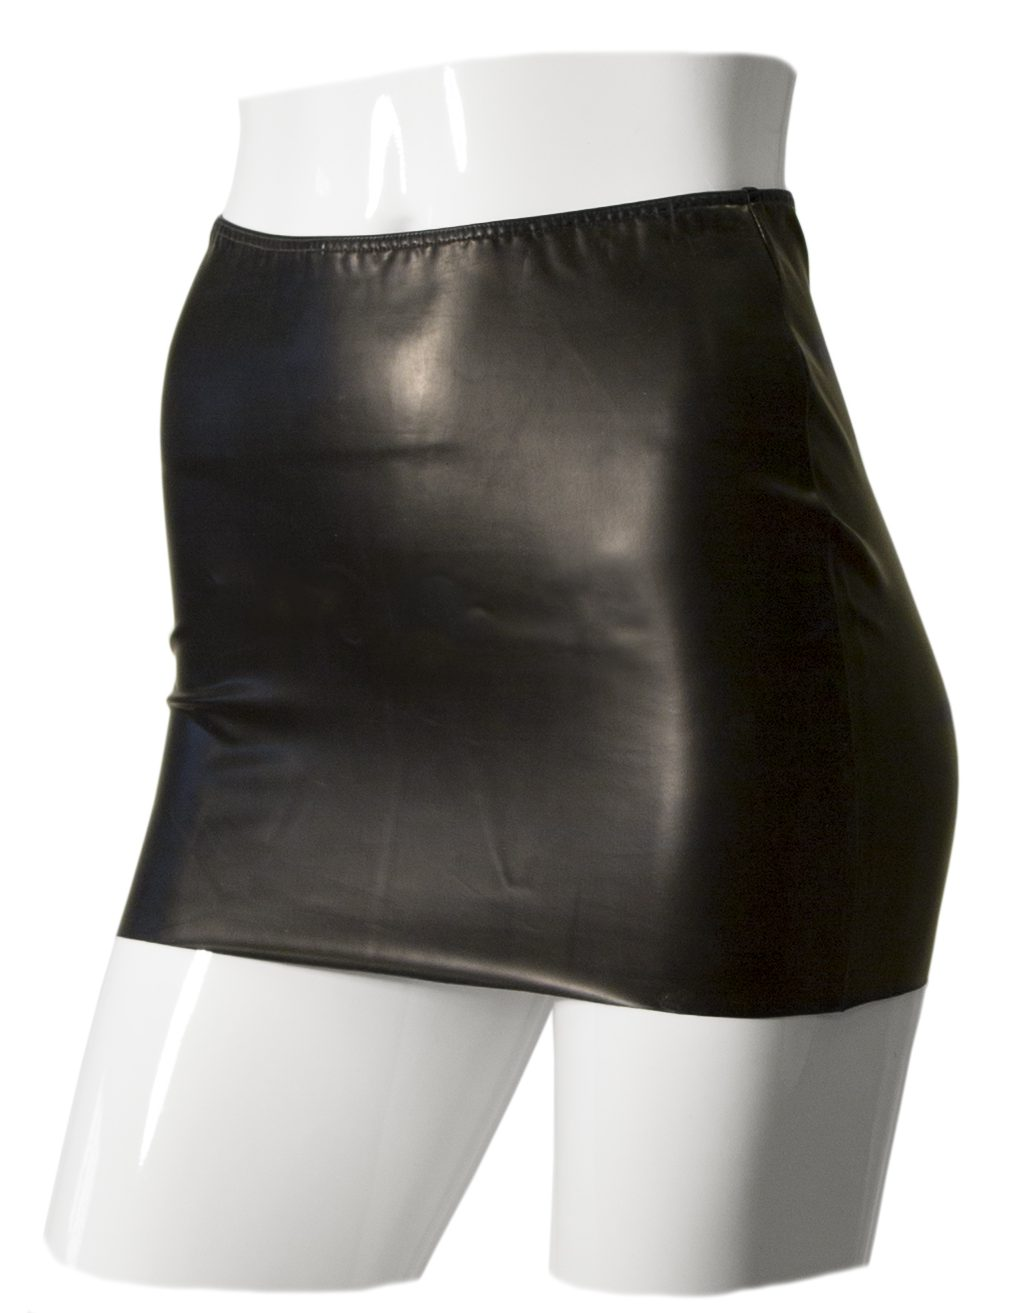 DATEX MINI SKIRT WITH CUT-OUT REAR